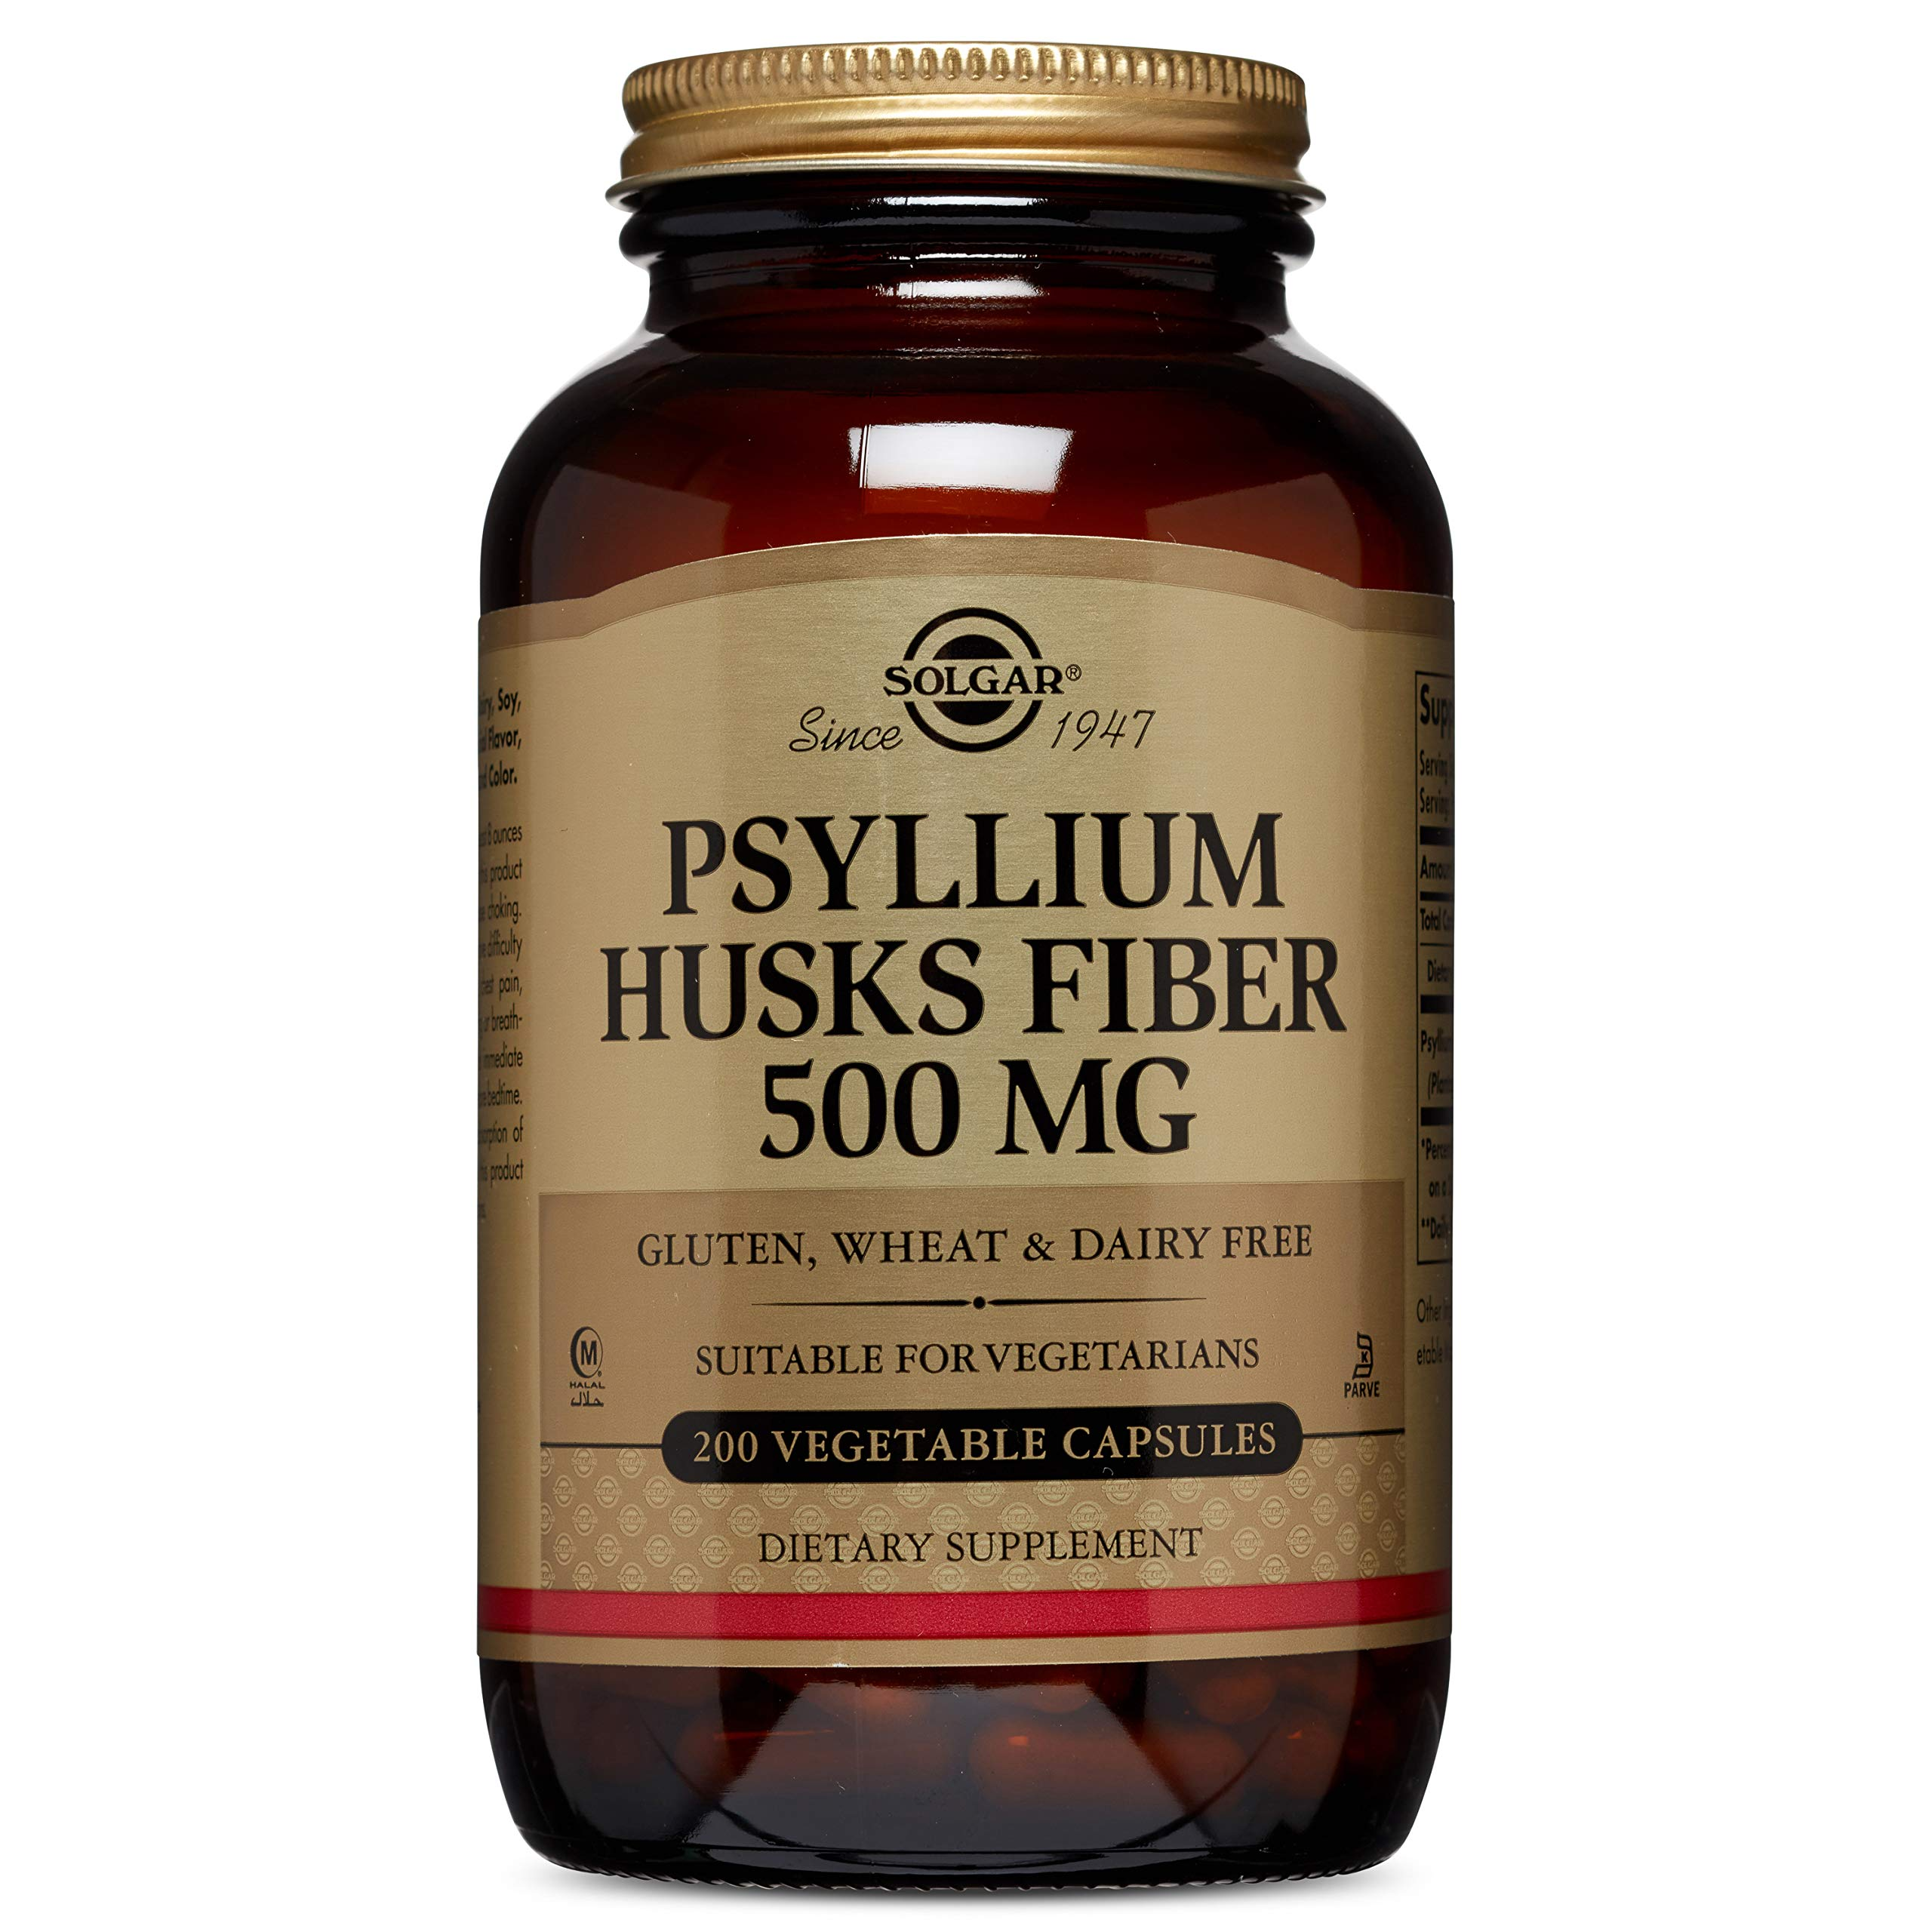 Solgar - Psyllium Husks Fiber 500 mg, 200 Vegetable Capsules by Solgar